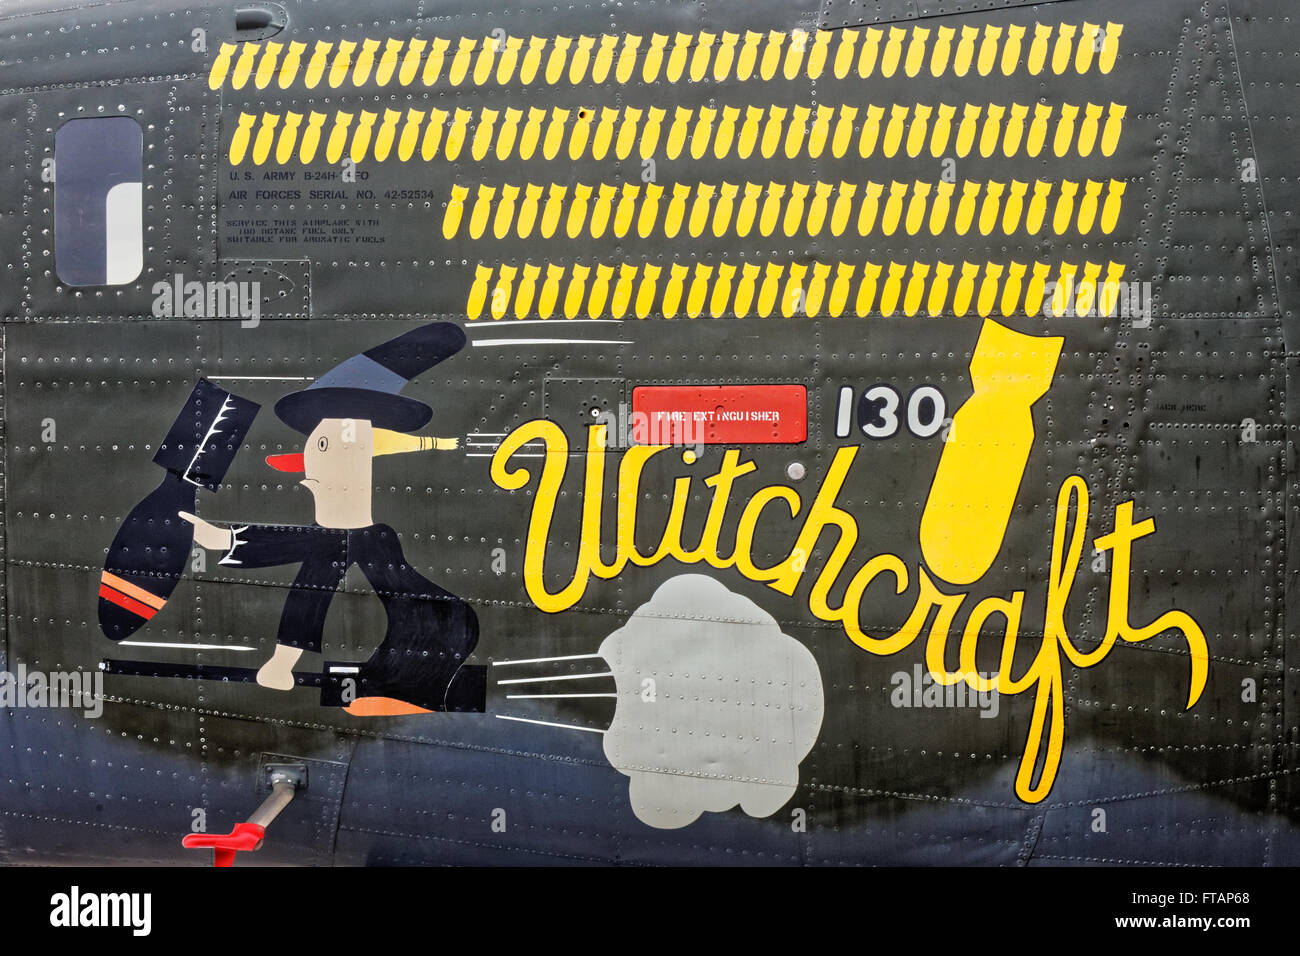 Consolidated B-24 'Witchcraft' - Stock Image